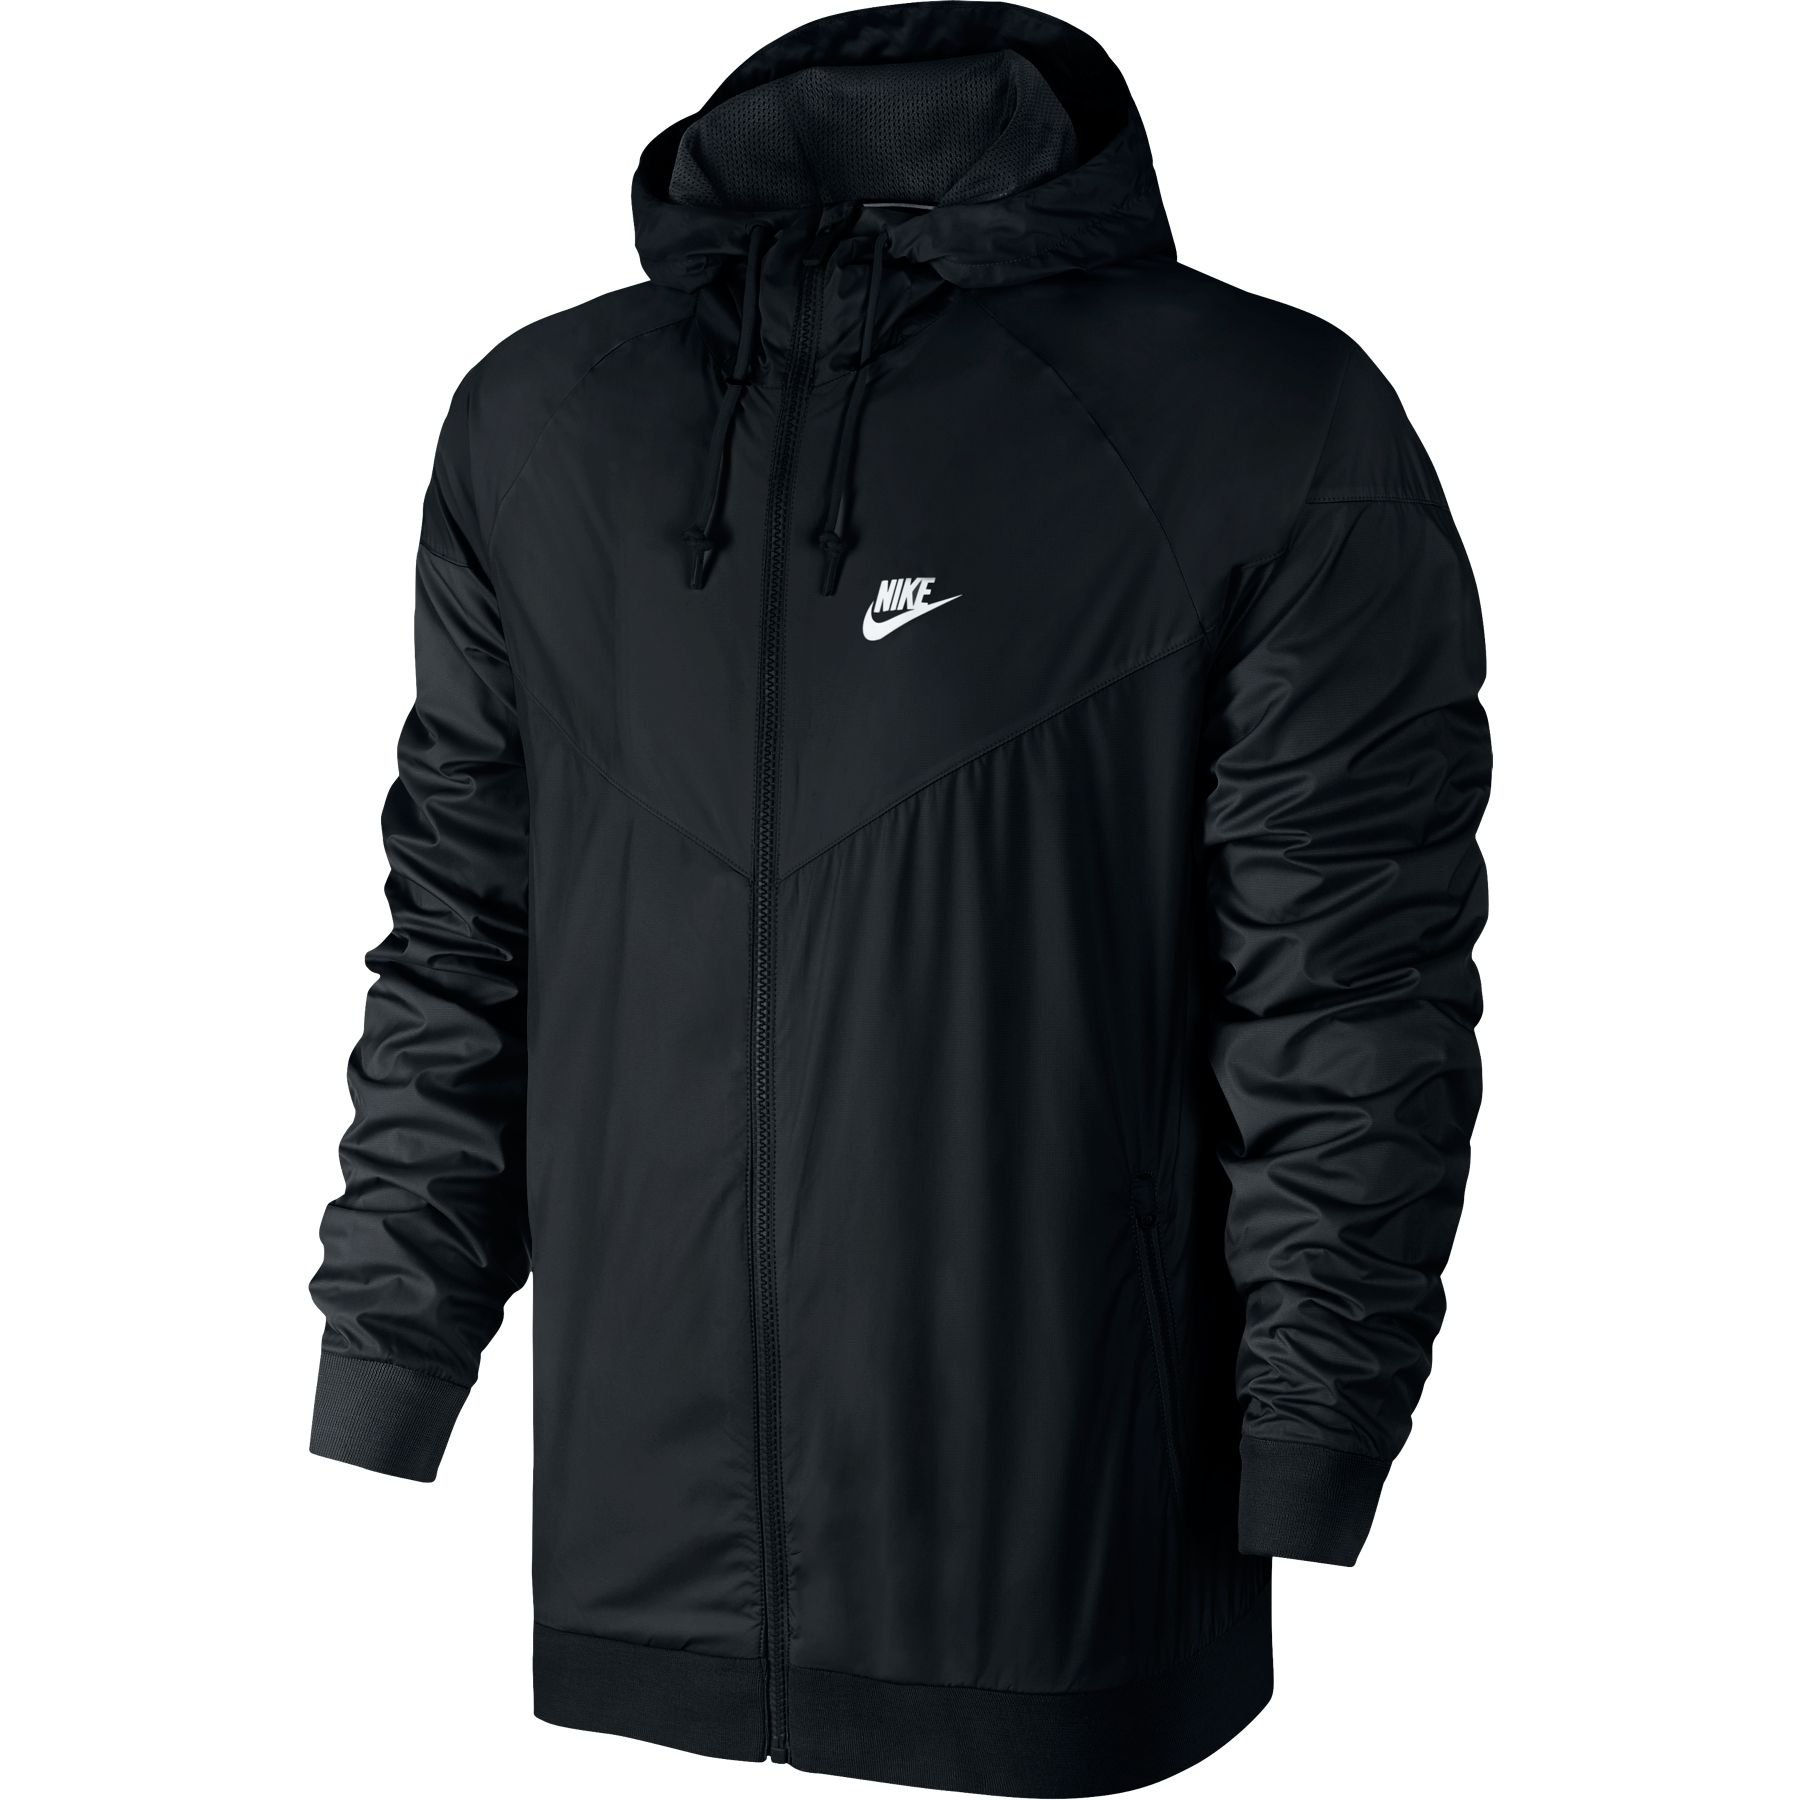 Nike Mens Windrunner Hooded Track Jacket Black/Black/White 727324-010 Size X-Large by Nike